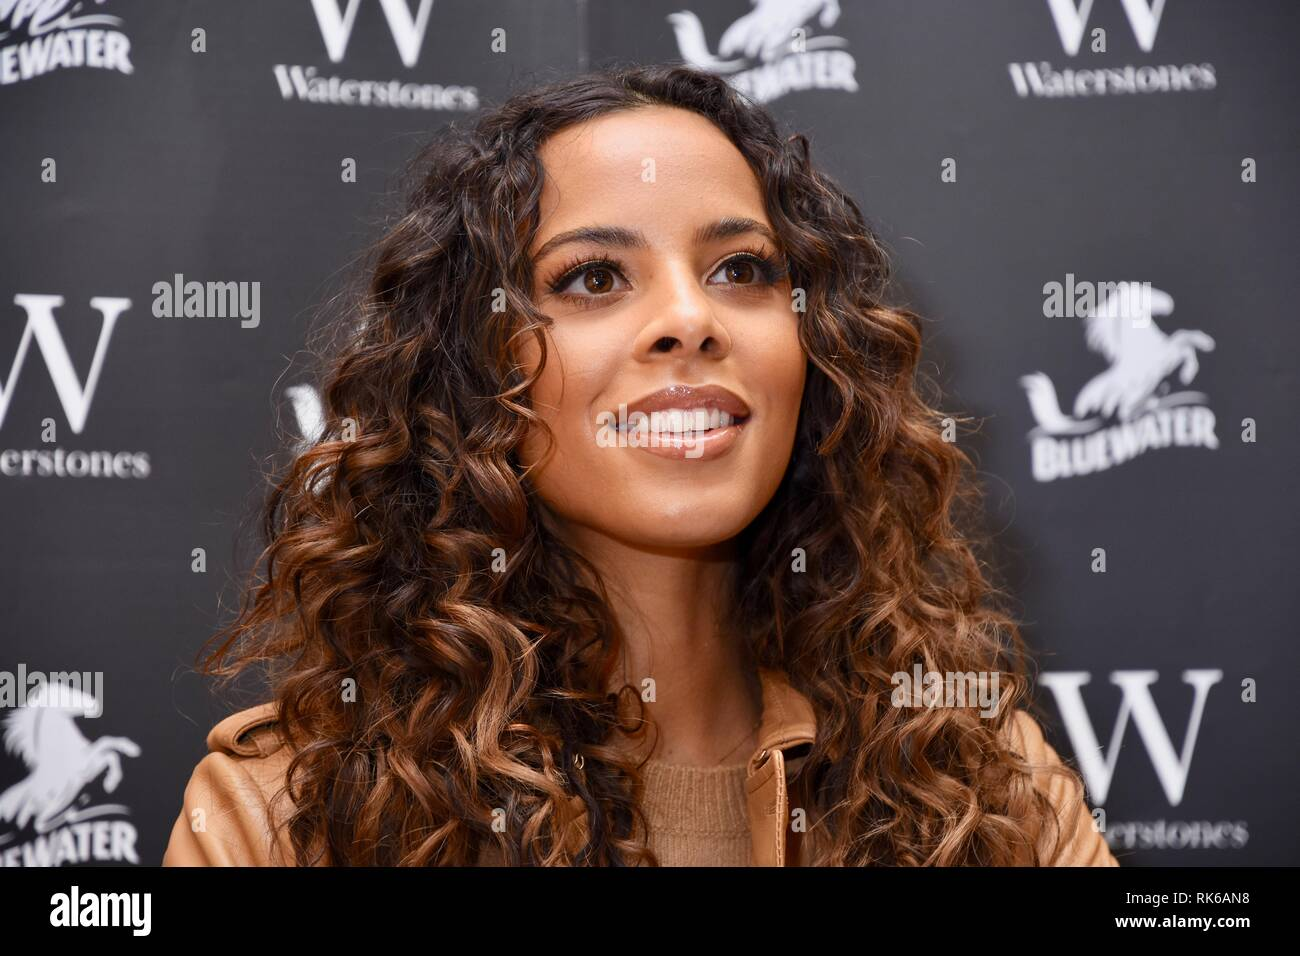 09th Feb, 2019. Rochelle Humes, Signing of 'The Mega Magic Hair Swap', Waterstones, Bluewater,Greenhithe,Kent.UK Credit: michael melia/Alamy Live News - Stock Image